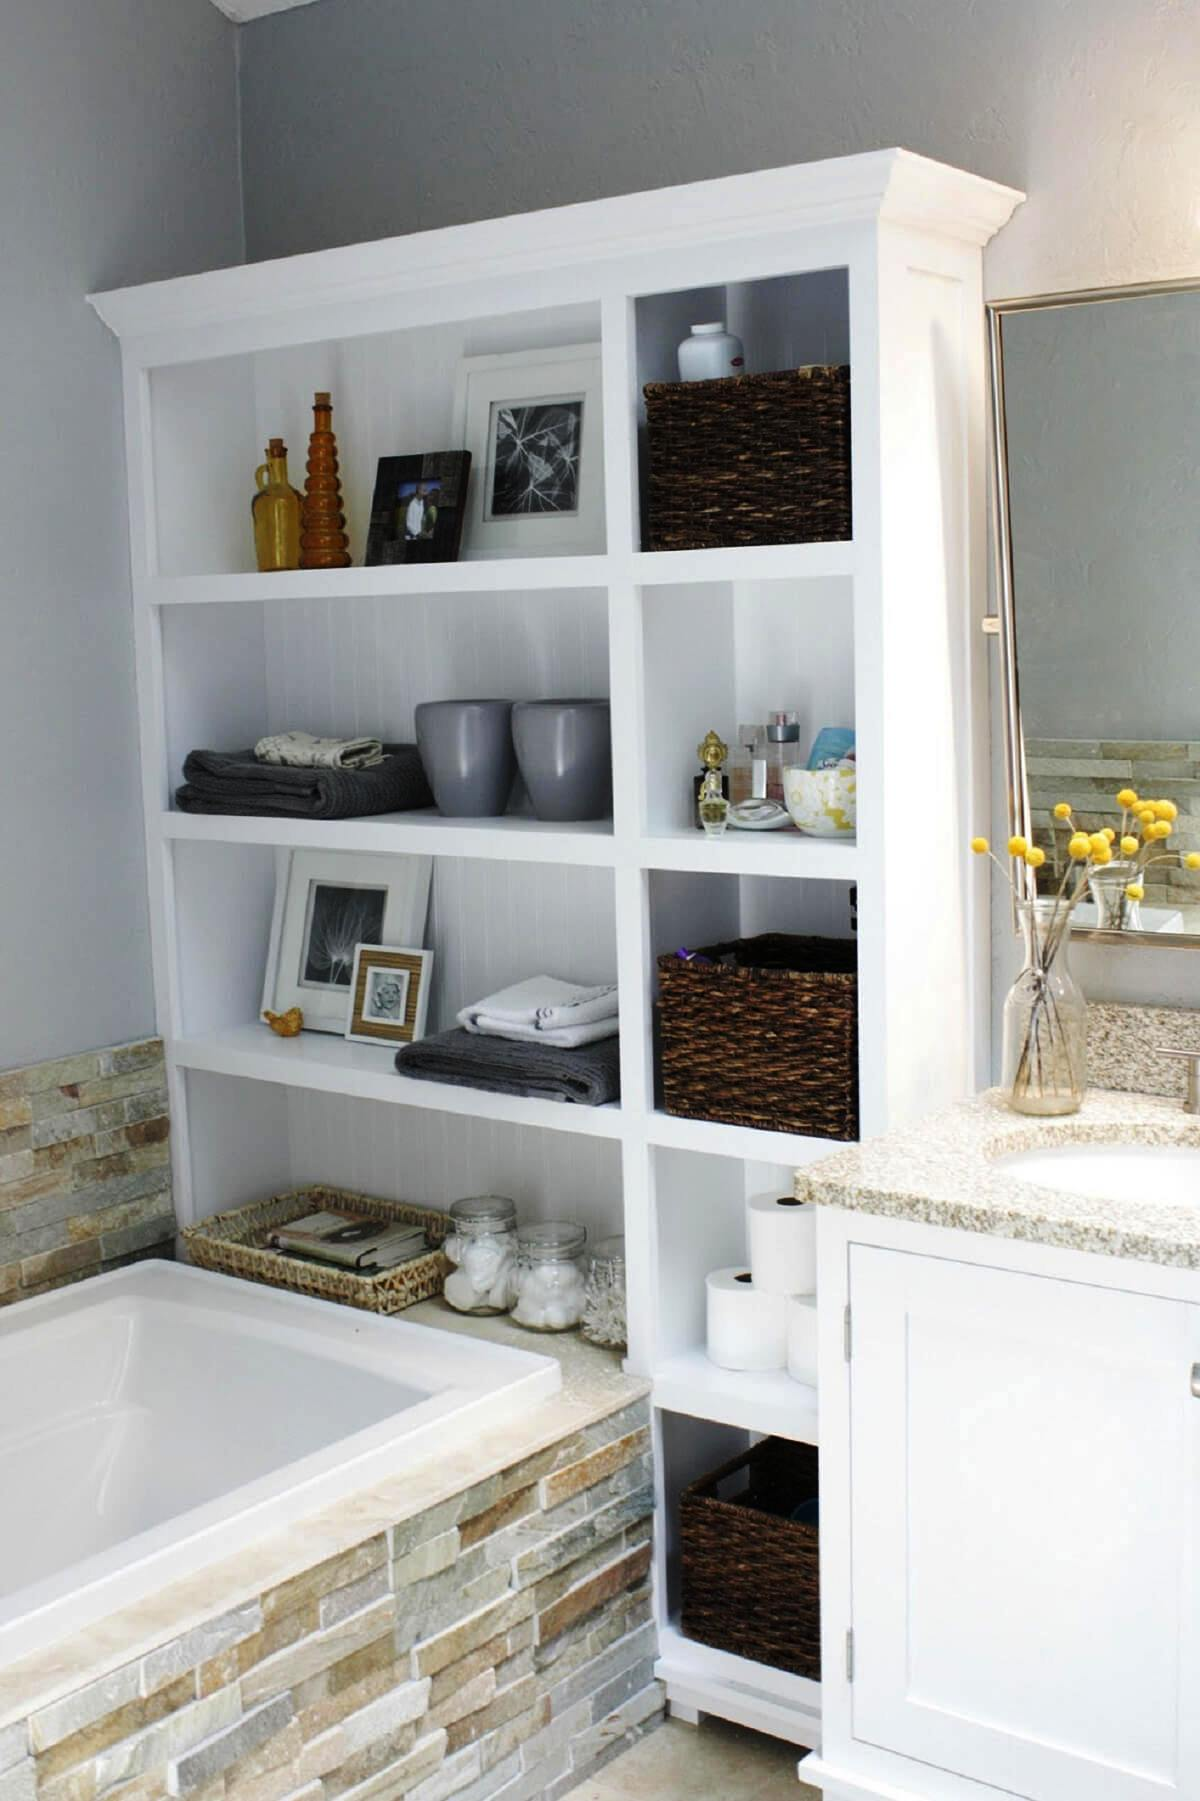 25 Amazing Storage Ideas For Small Spaces To Try Out ... on Small Space Bathroom  id=62639